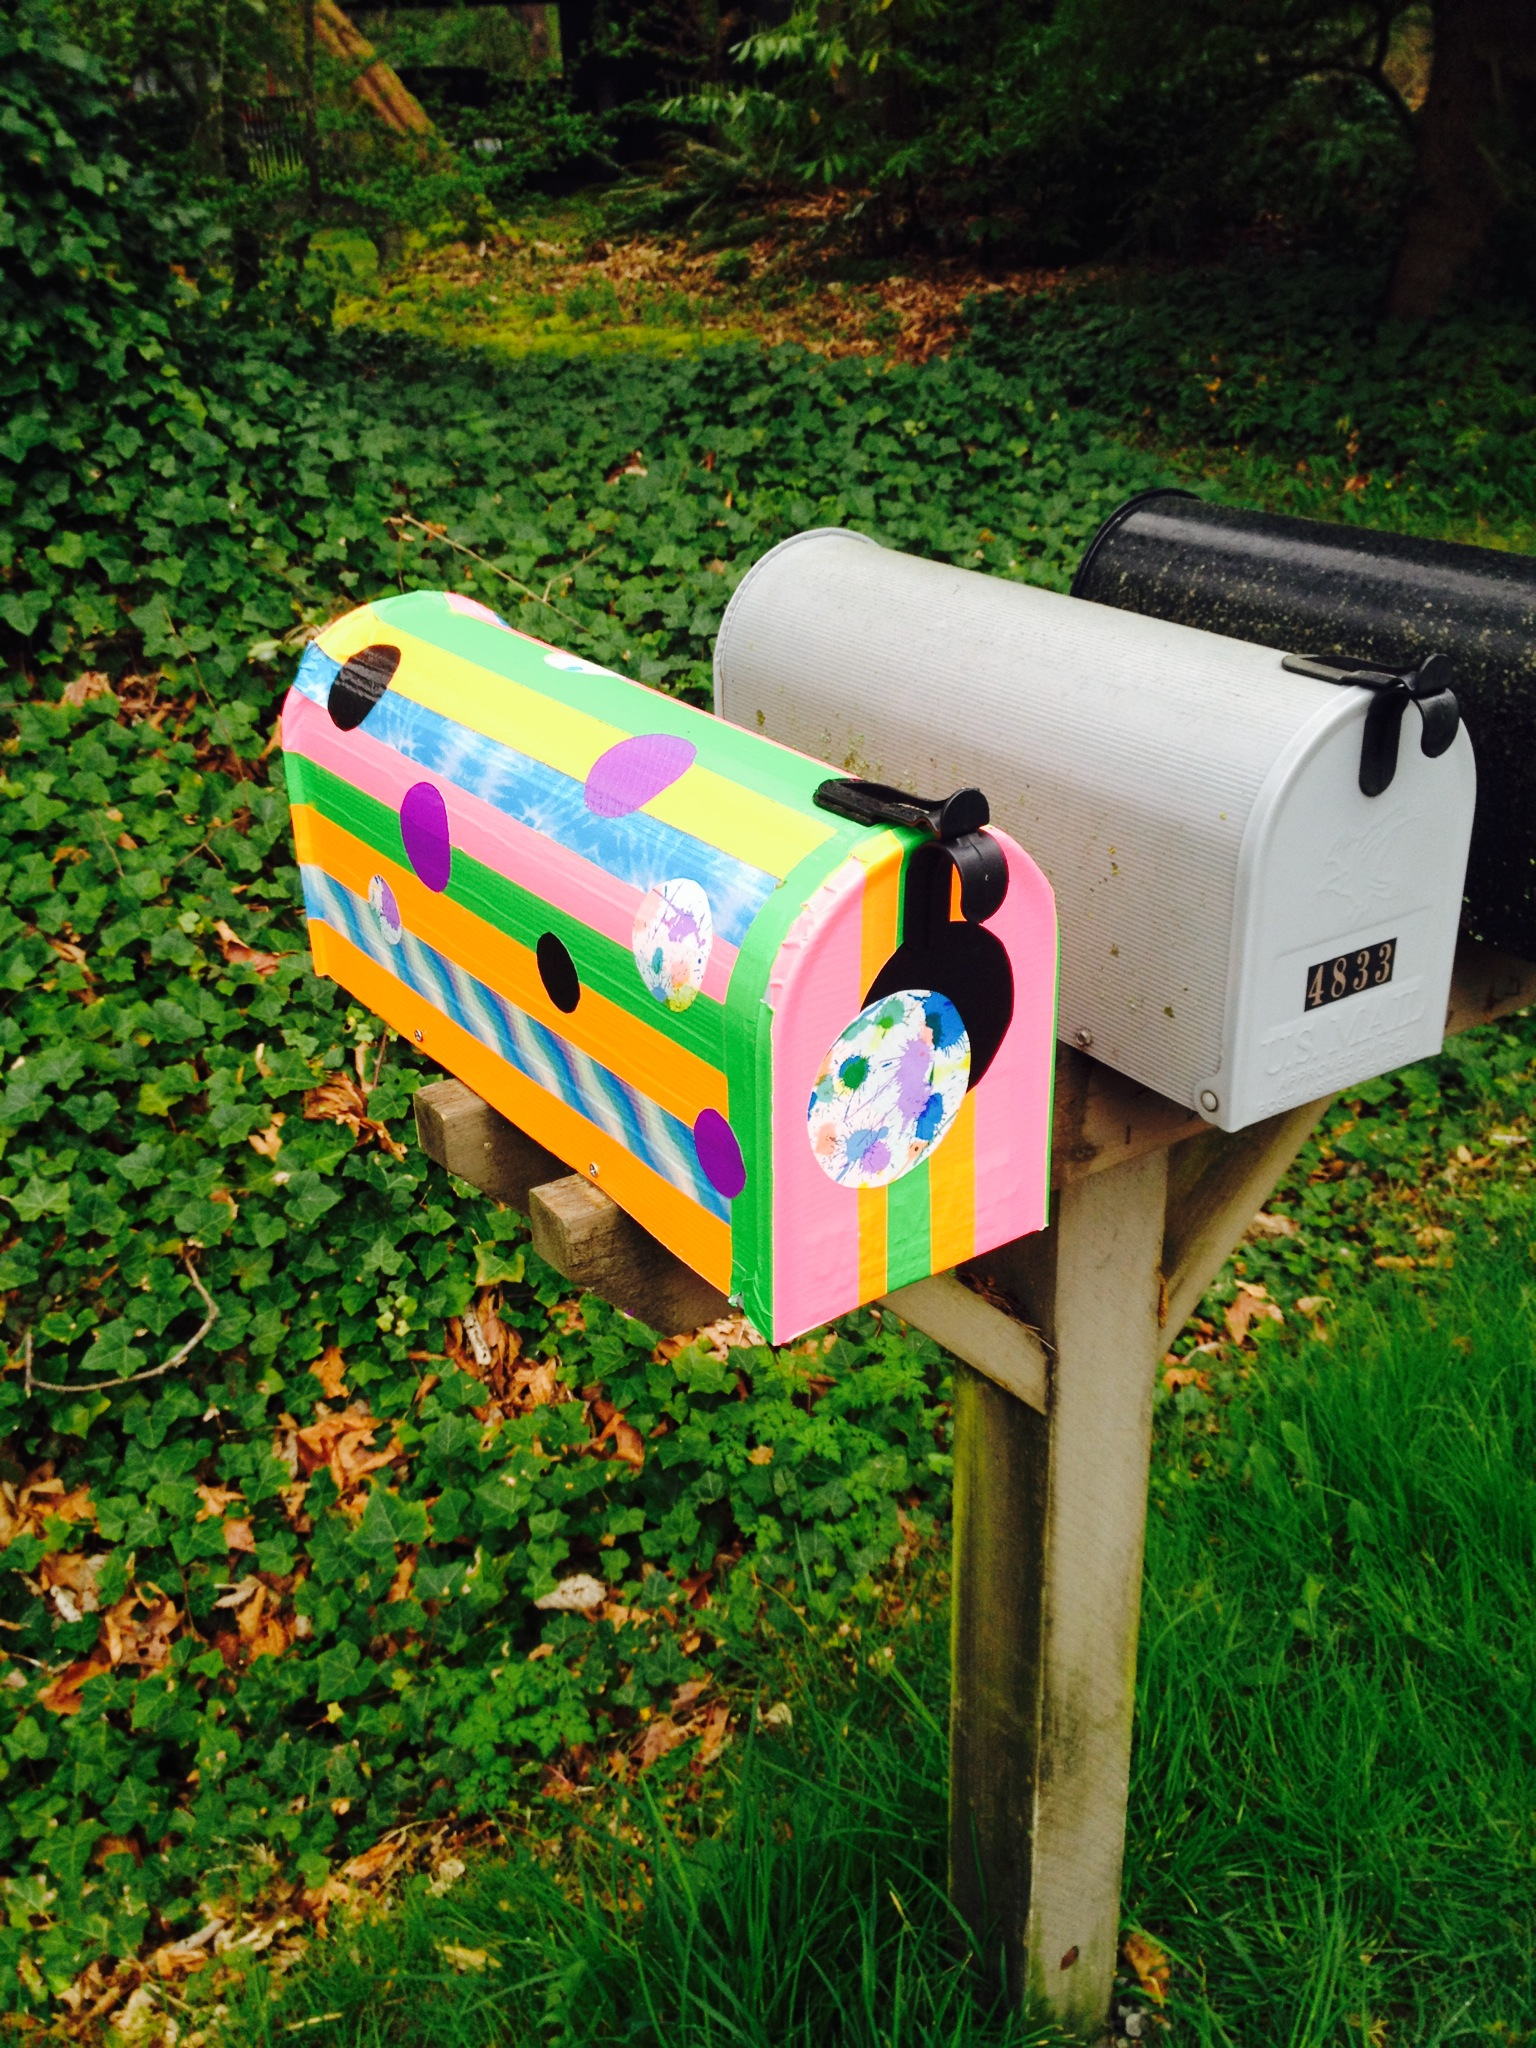 Duct tape mail box diy personalized mailbox | bexbernard.com